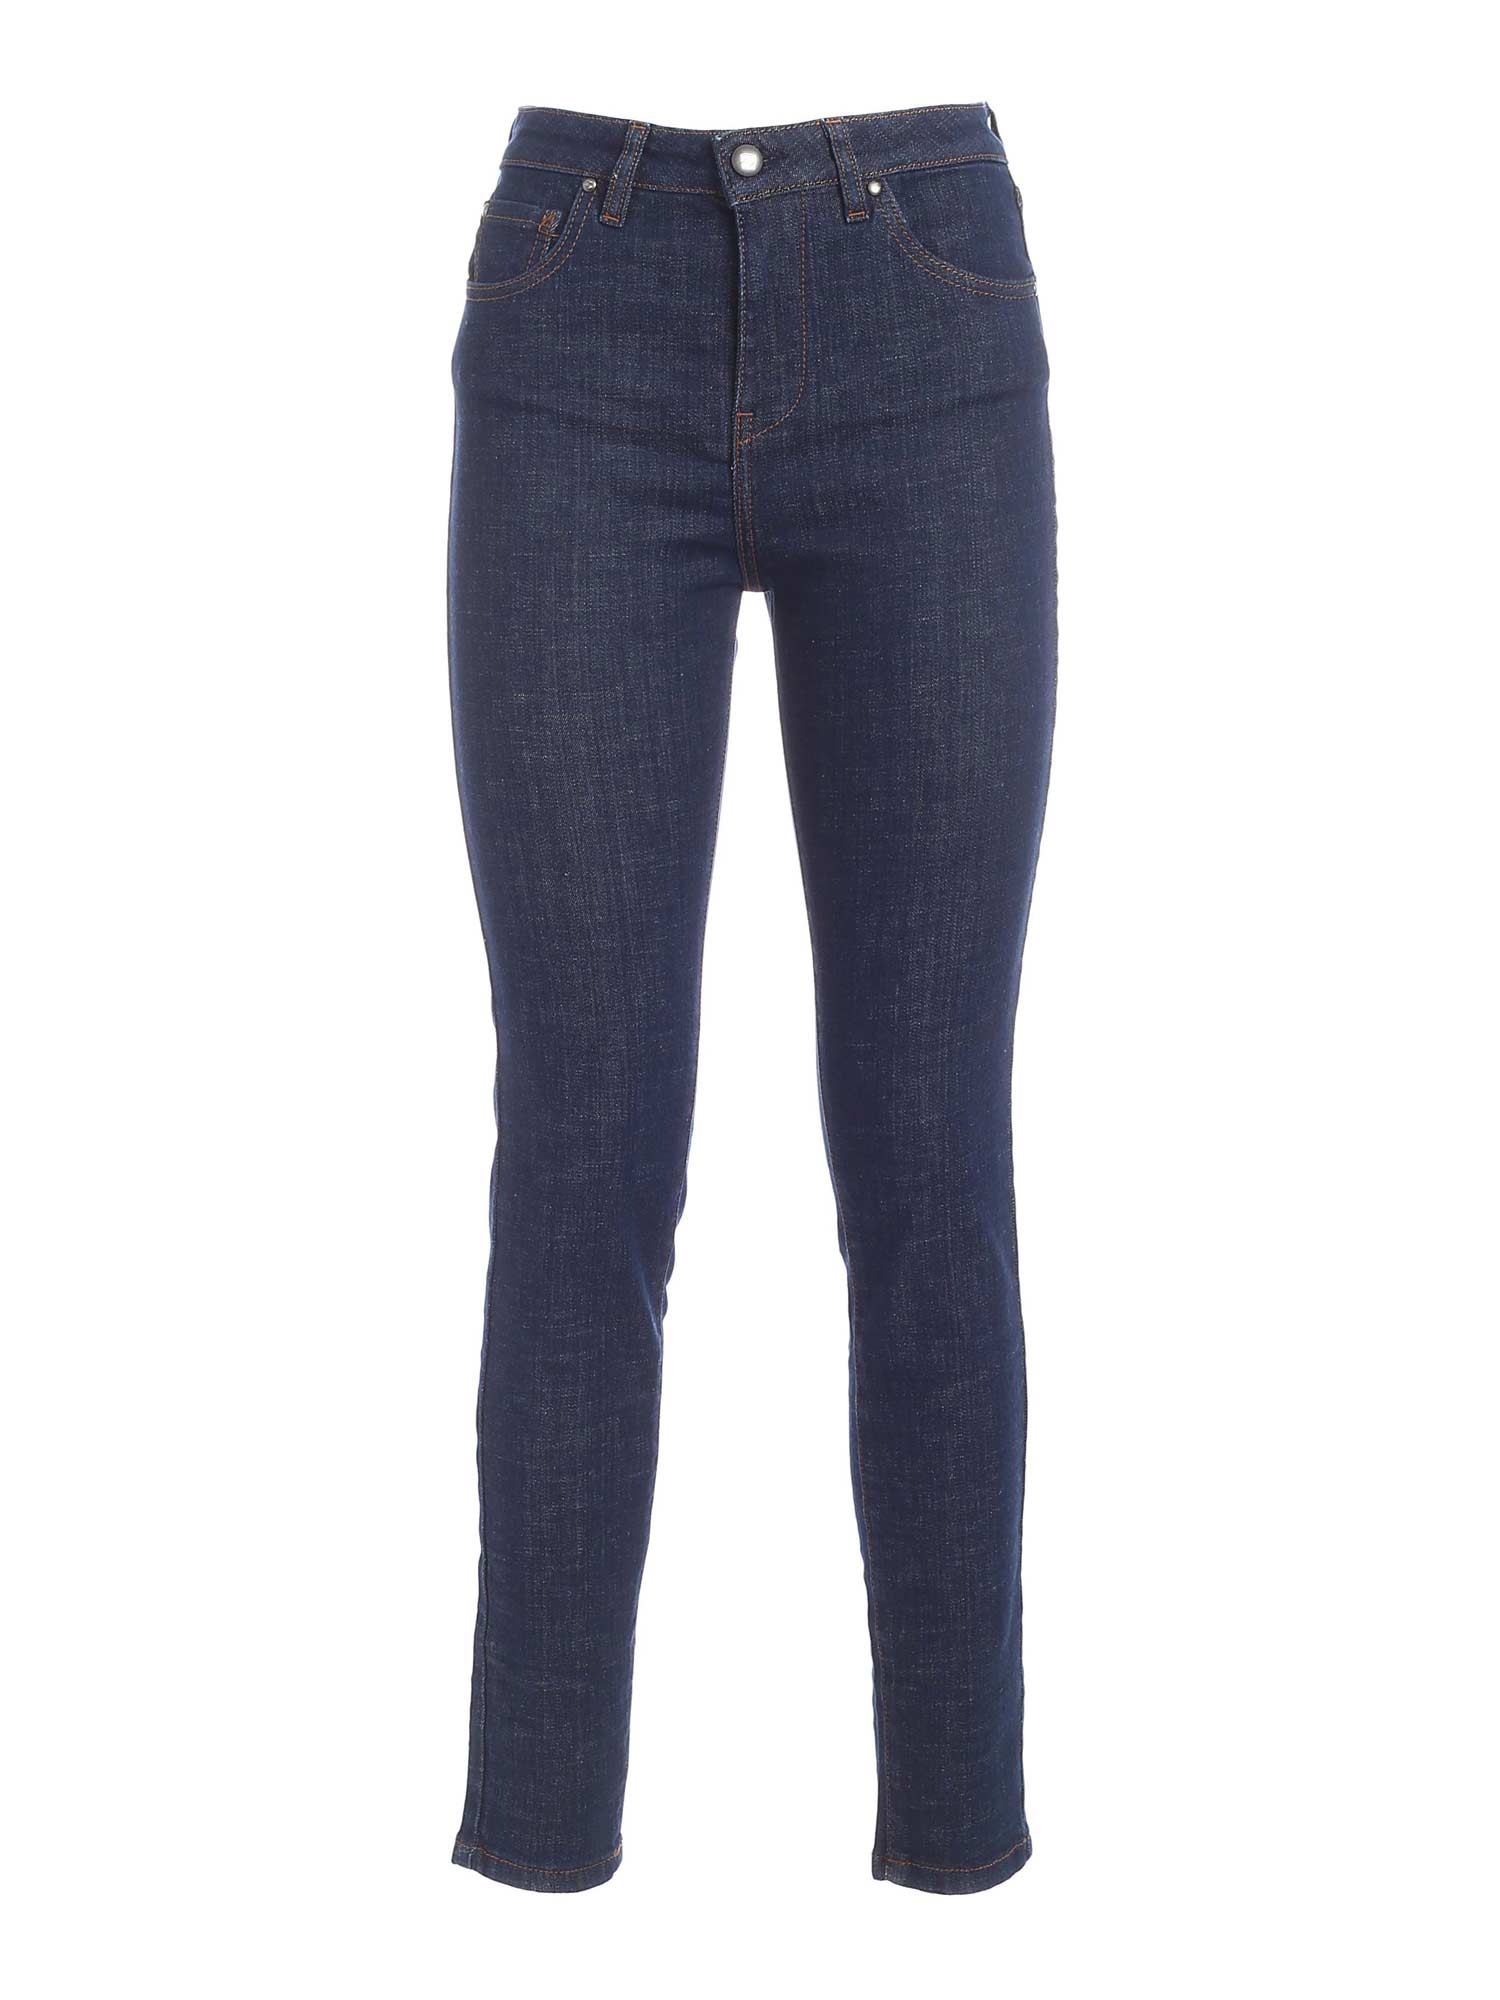 Fay Cottons LOGO JEANS IN BLUE